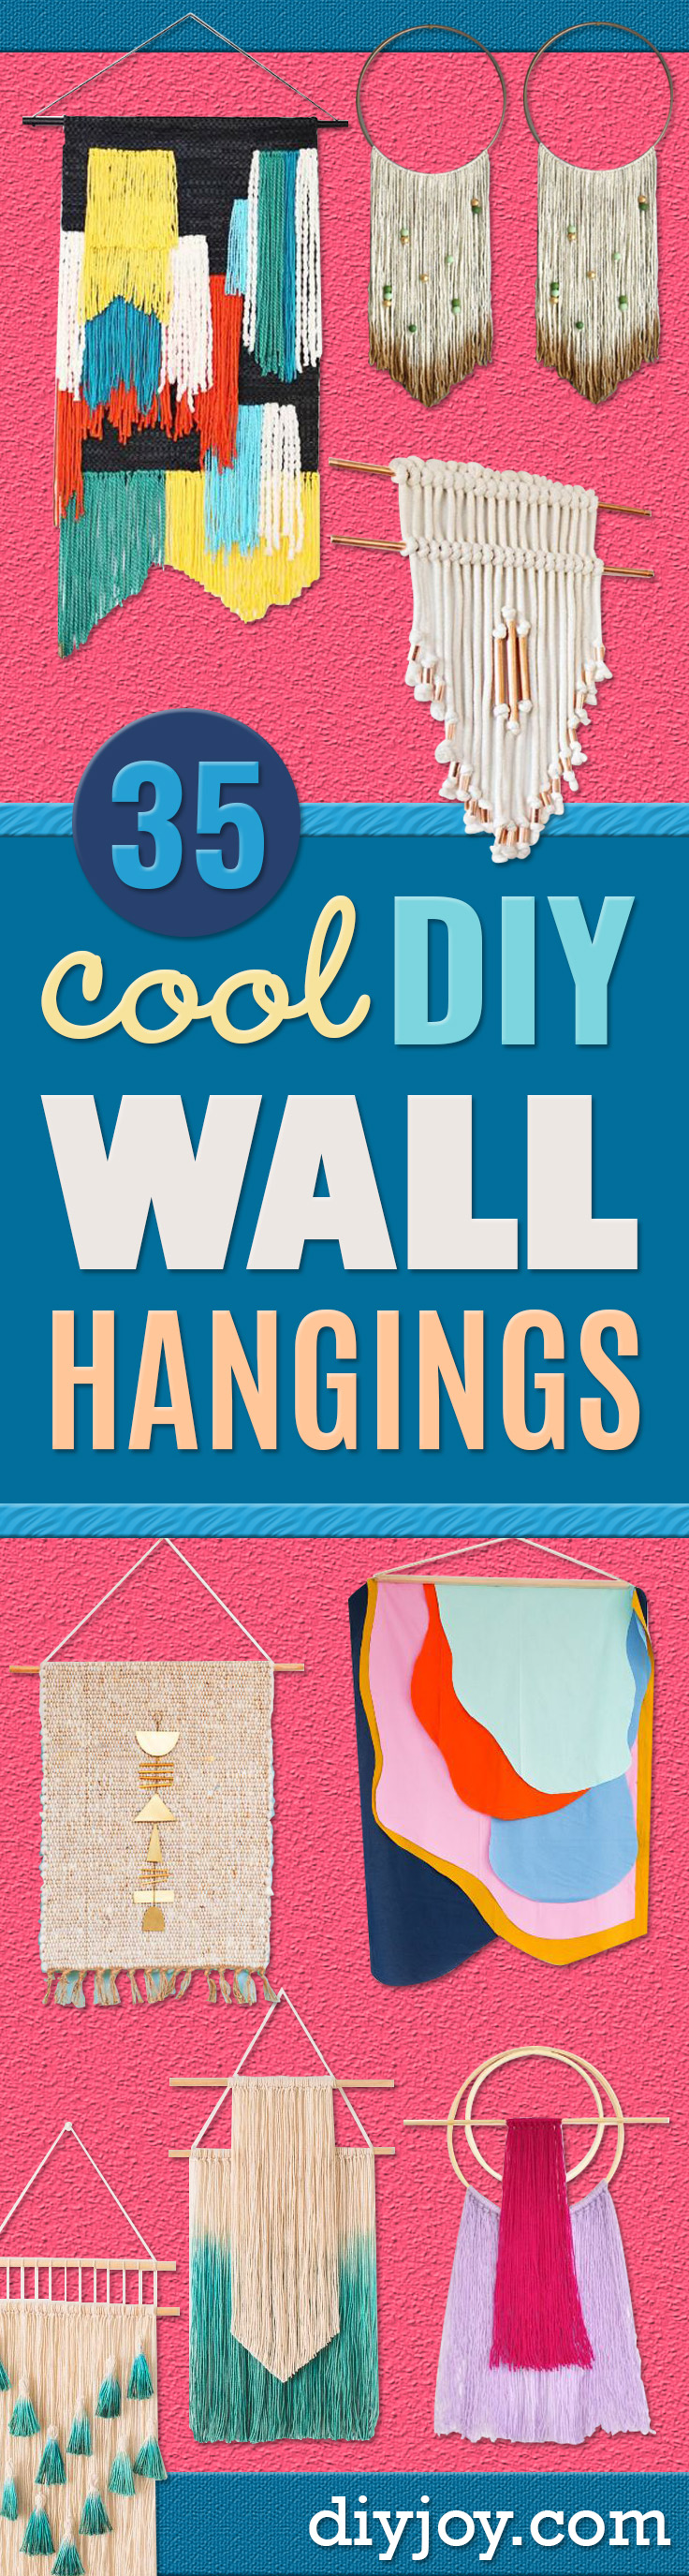 DIY Wall Hangings - Easy Yarn Projects , Macrame Ideas , Fabric Tapestry and Paper Arts and Crafts , Planter and Wood Board Ideas for Bedroom and Living Room Decor - Cute Mobile and Wall Hanging for Nursery and Kids Rooms http://diyjoy.com/diy-wall-hangings